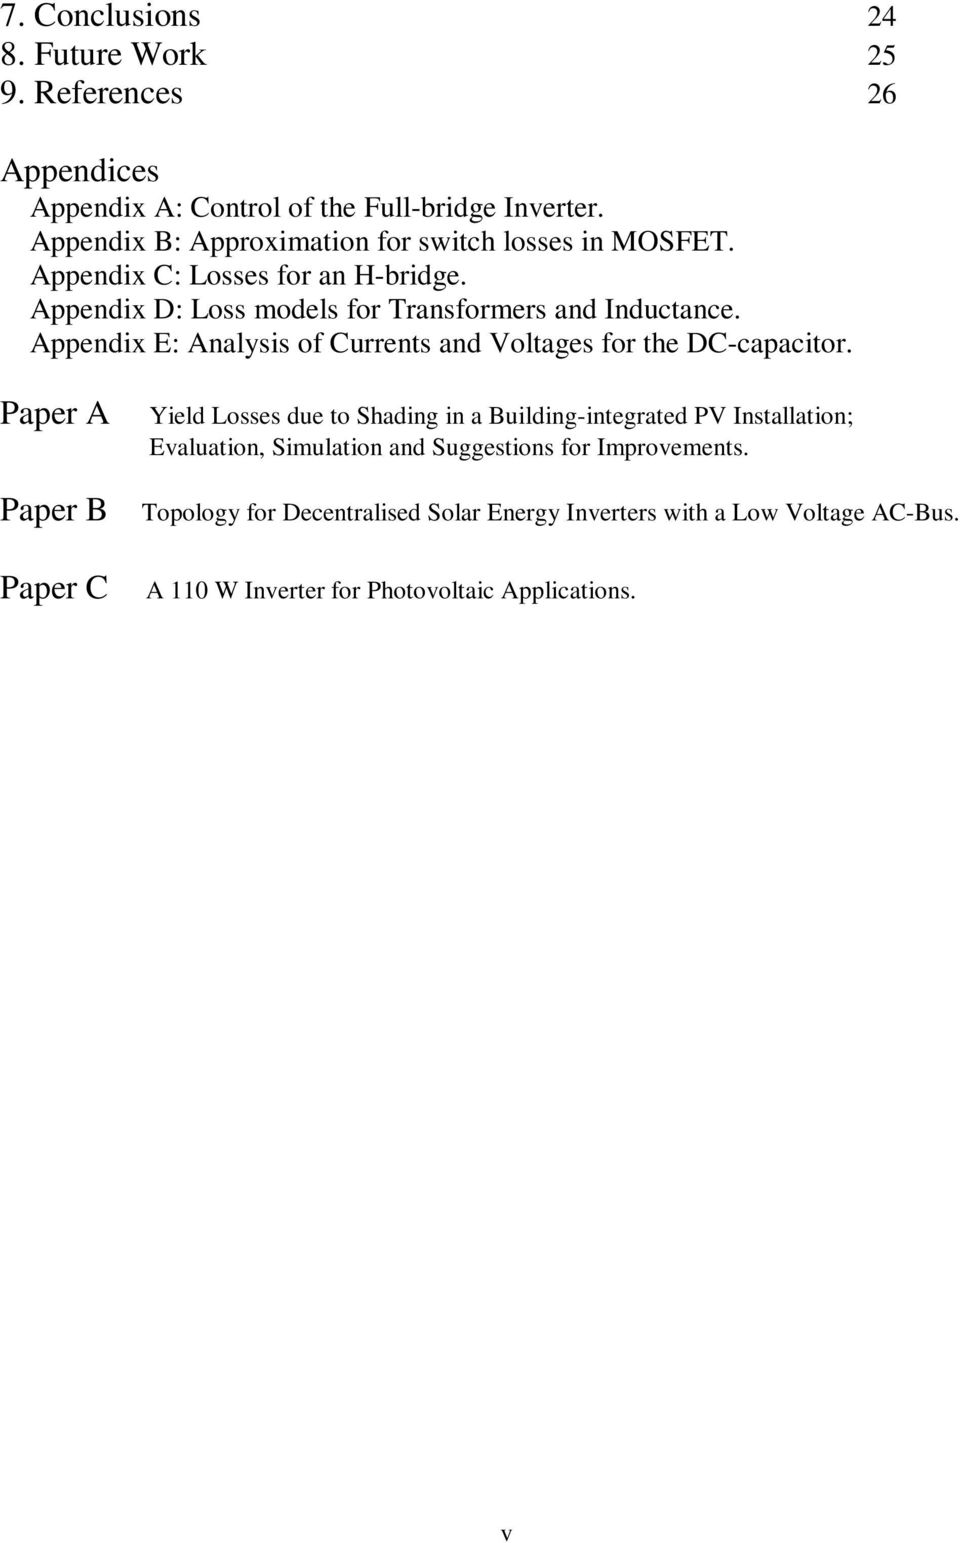 Appendix E: Analysis of Currents and Voltages for the DC-capacitor.